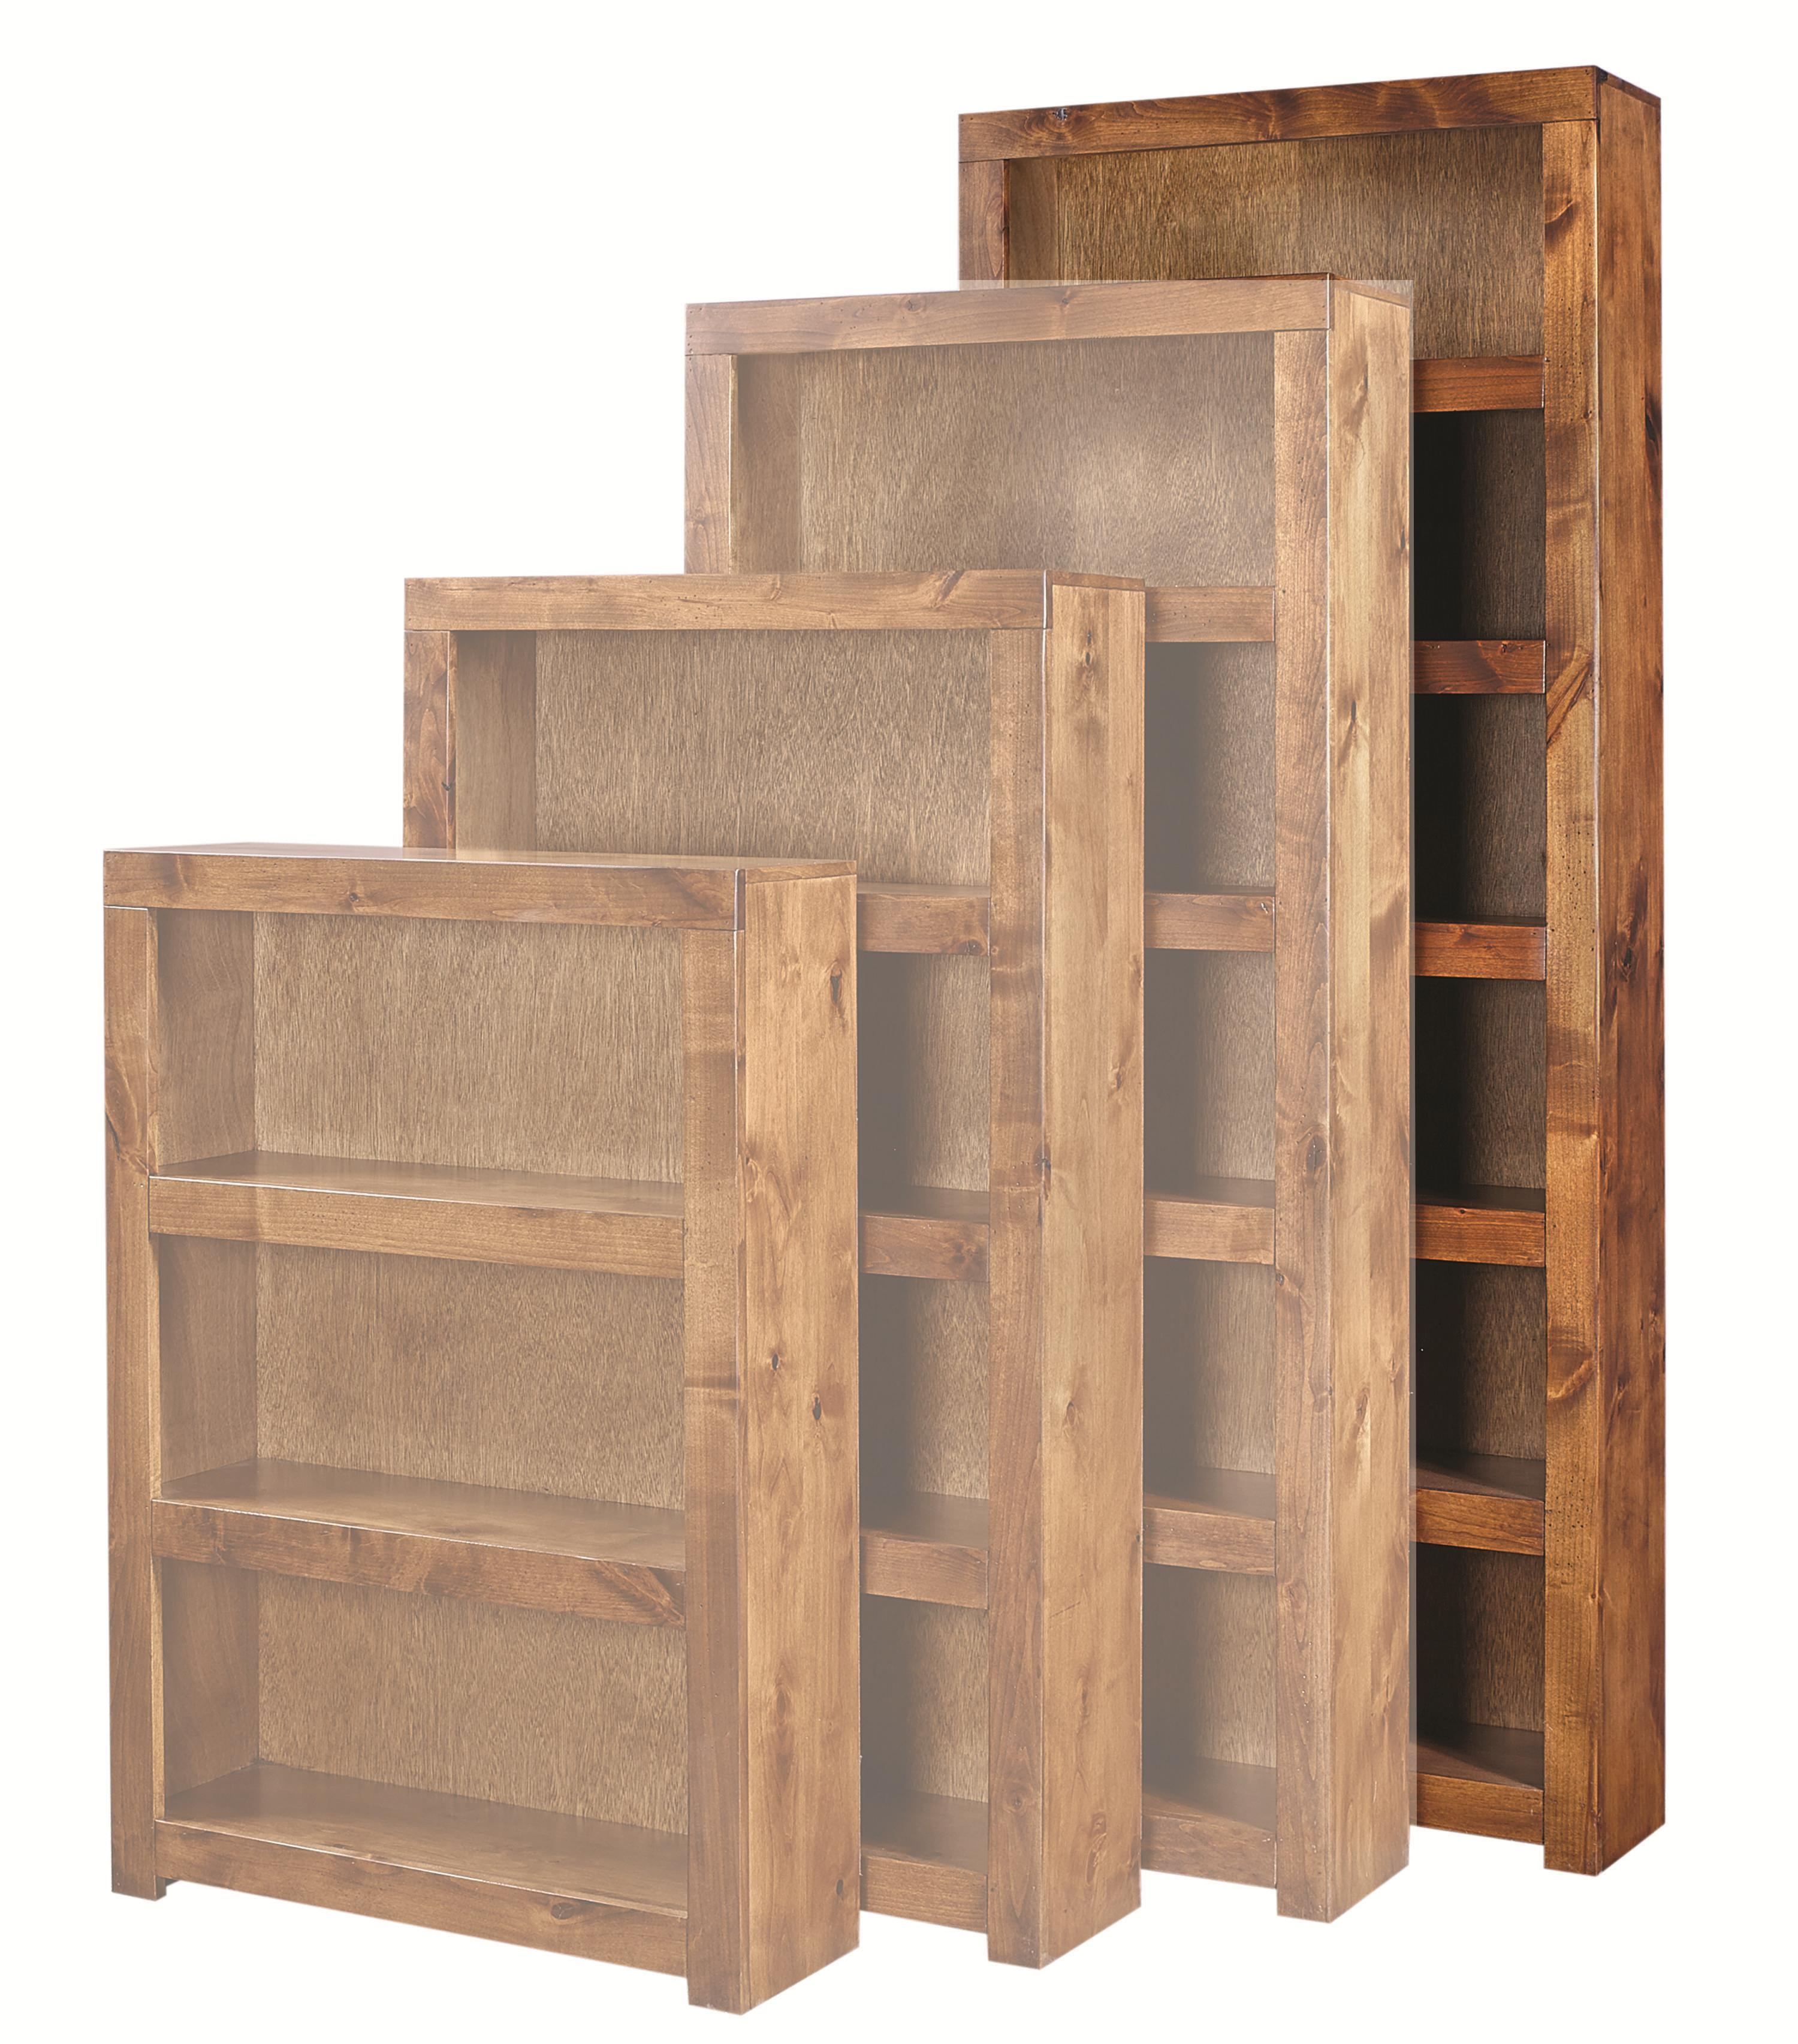 Contemporary Alder 84 Inch Bookcase by Aspenhome at Walker's Furniture